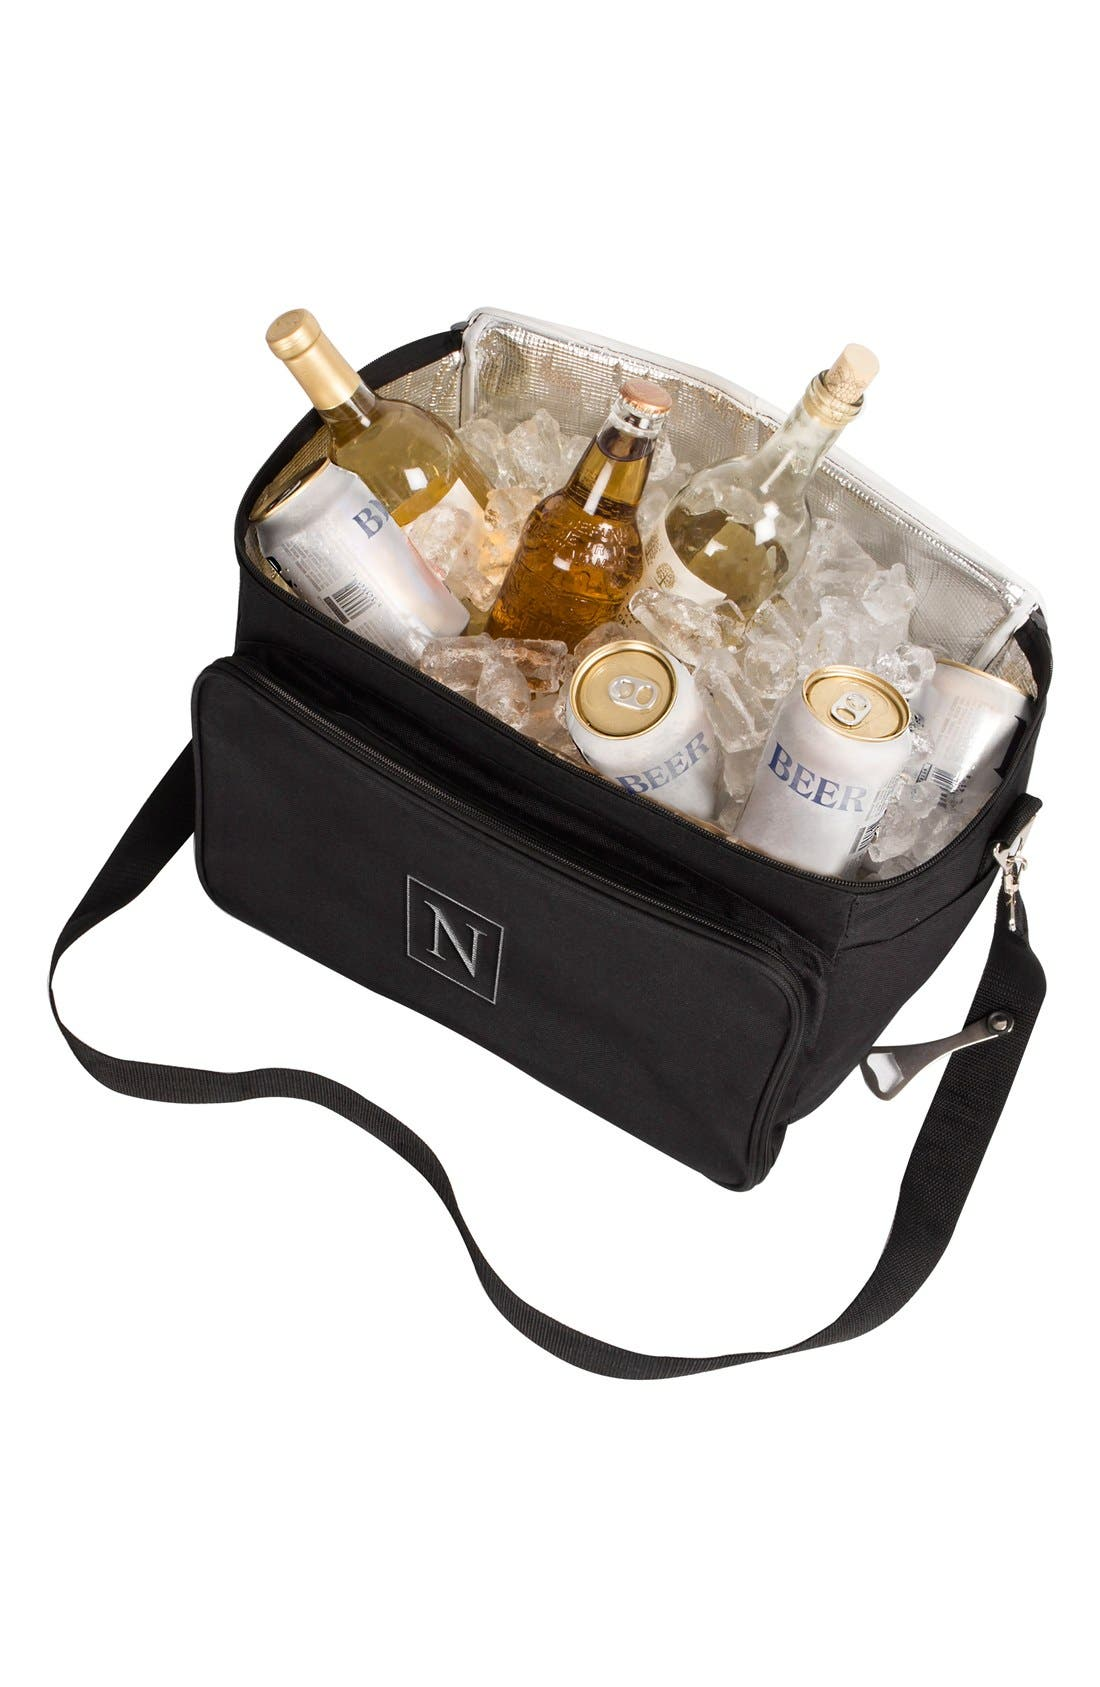 Monogram Tailgate Cooler with Grilling Tools,                             Alternate thumbnail 64, color,